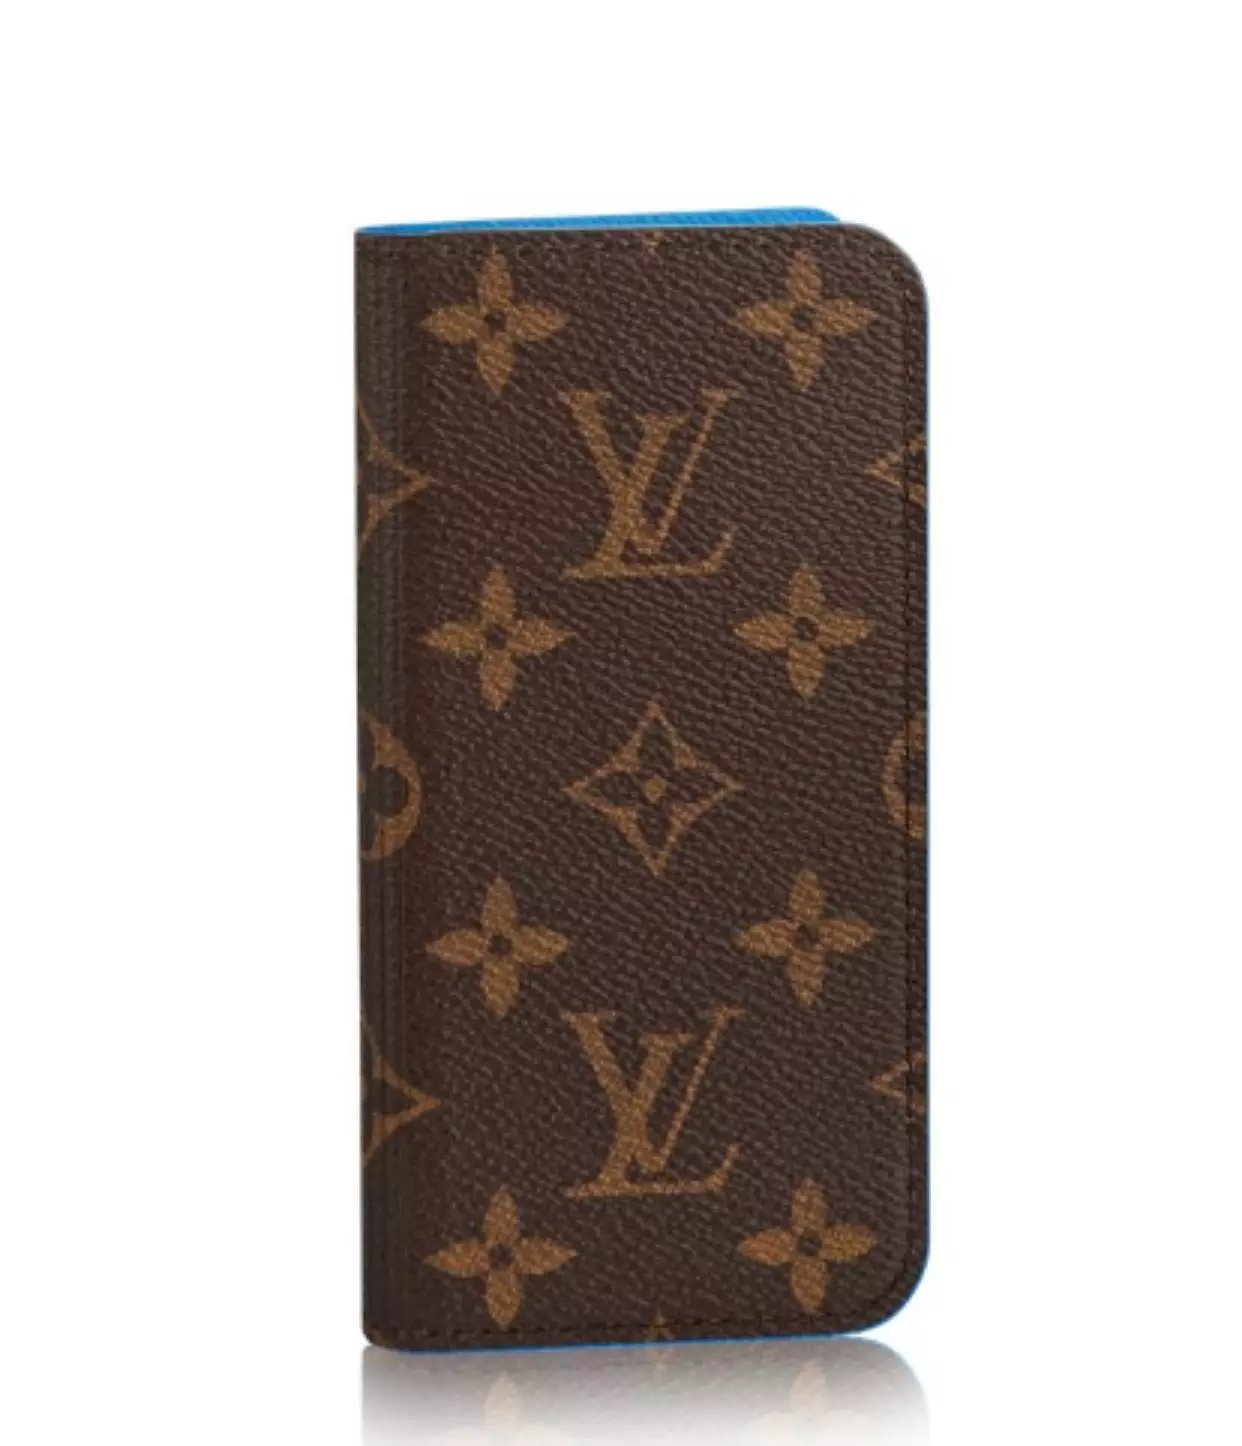 best iphone 8 Plus case brands design a iphone 8 Plus case Louis Vuitton iphone 8 Plus case iphone 8 Plus juice pack make an iphone case morphie juice pack case for mobile iphones covers and cases 2 cell phone case